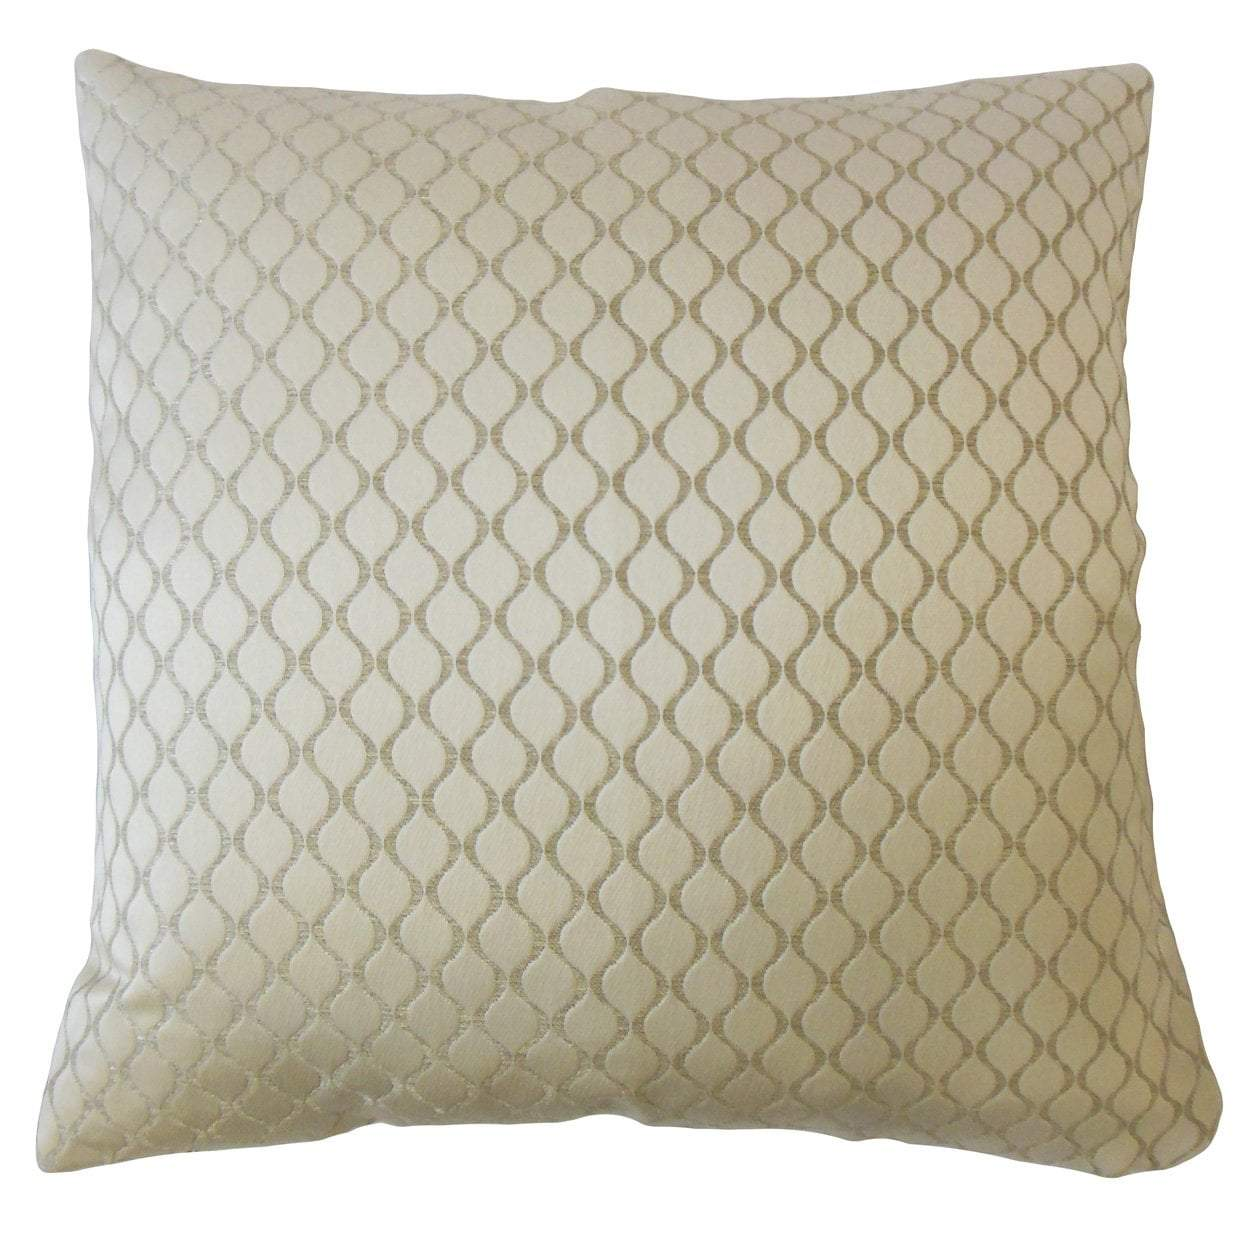 Meyer Throw Pillow Cover